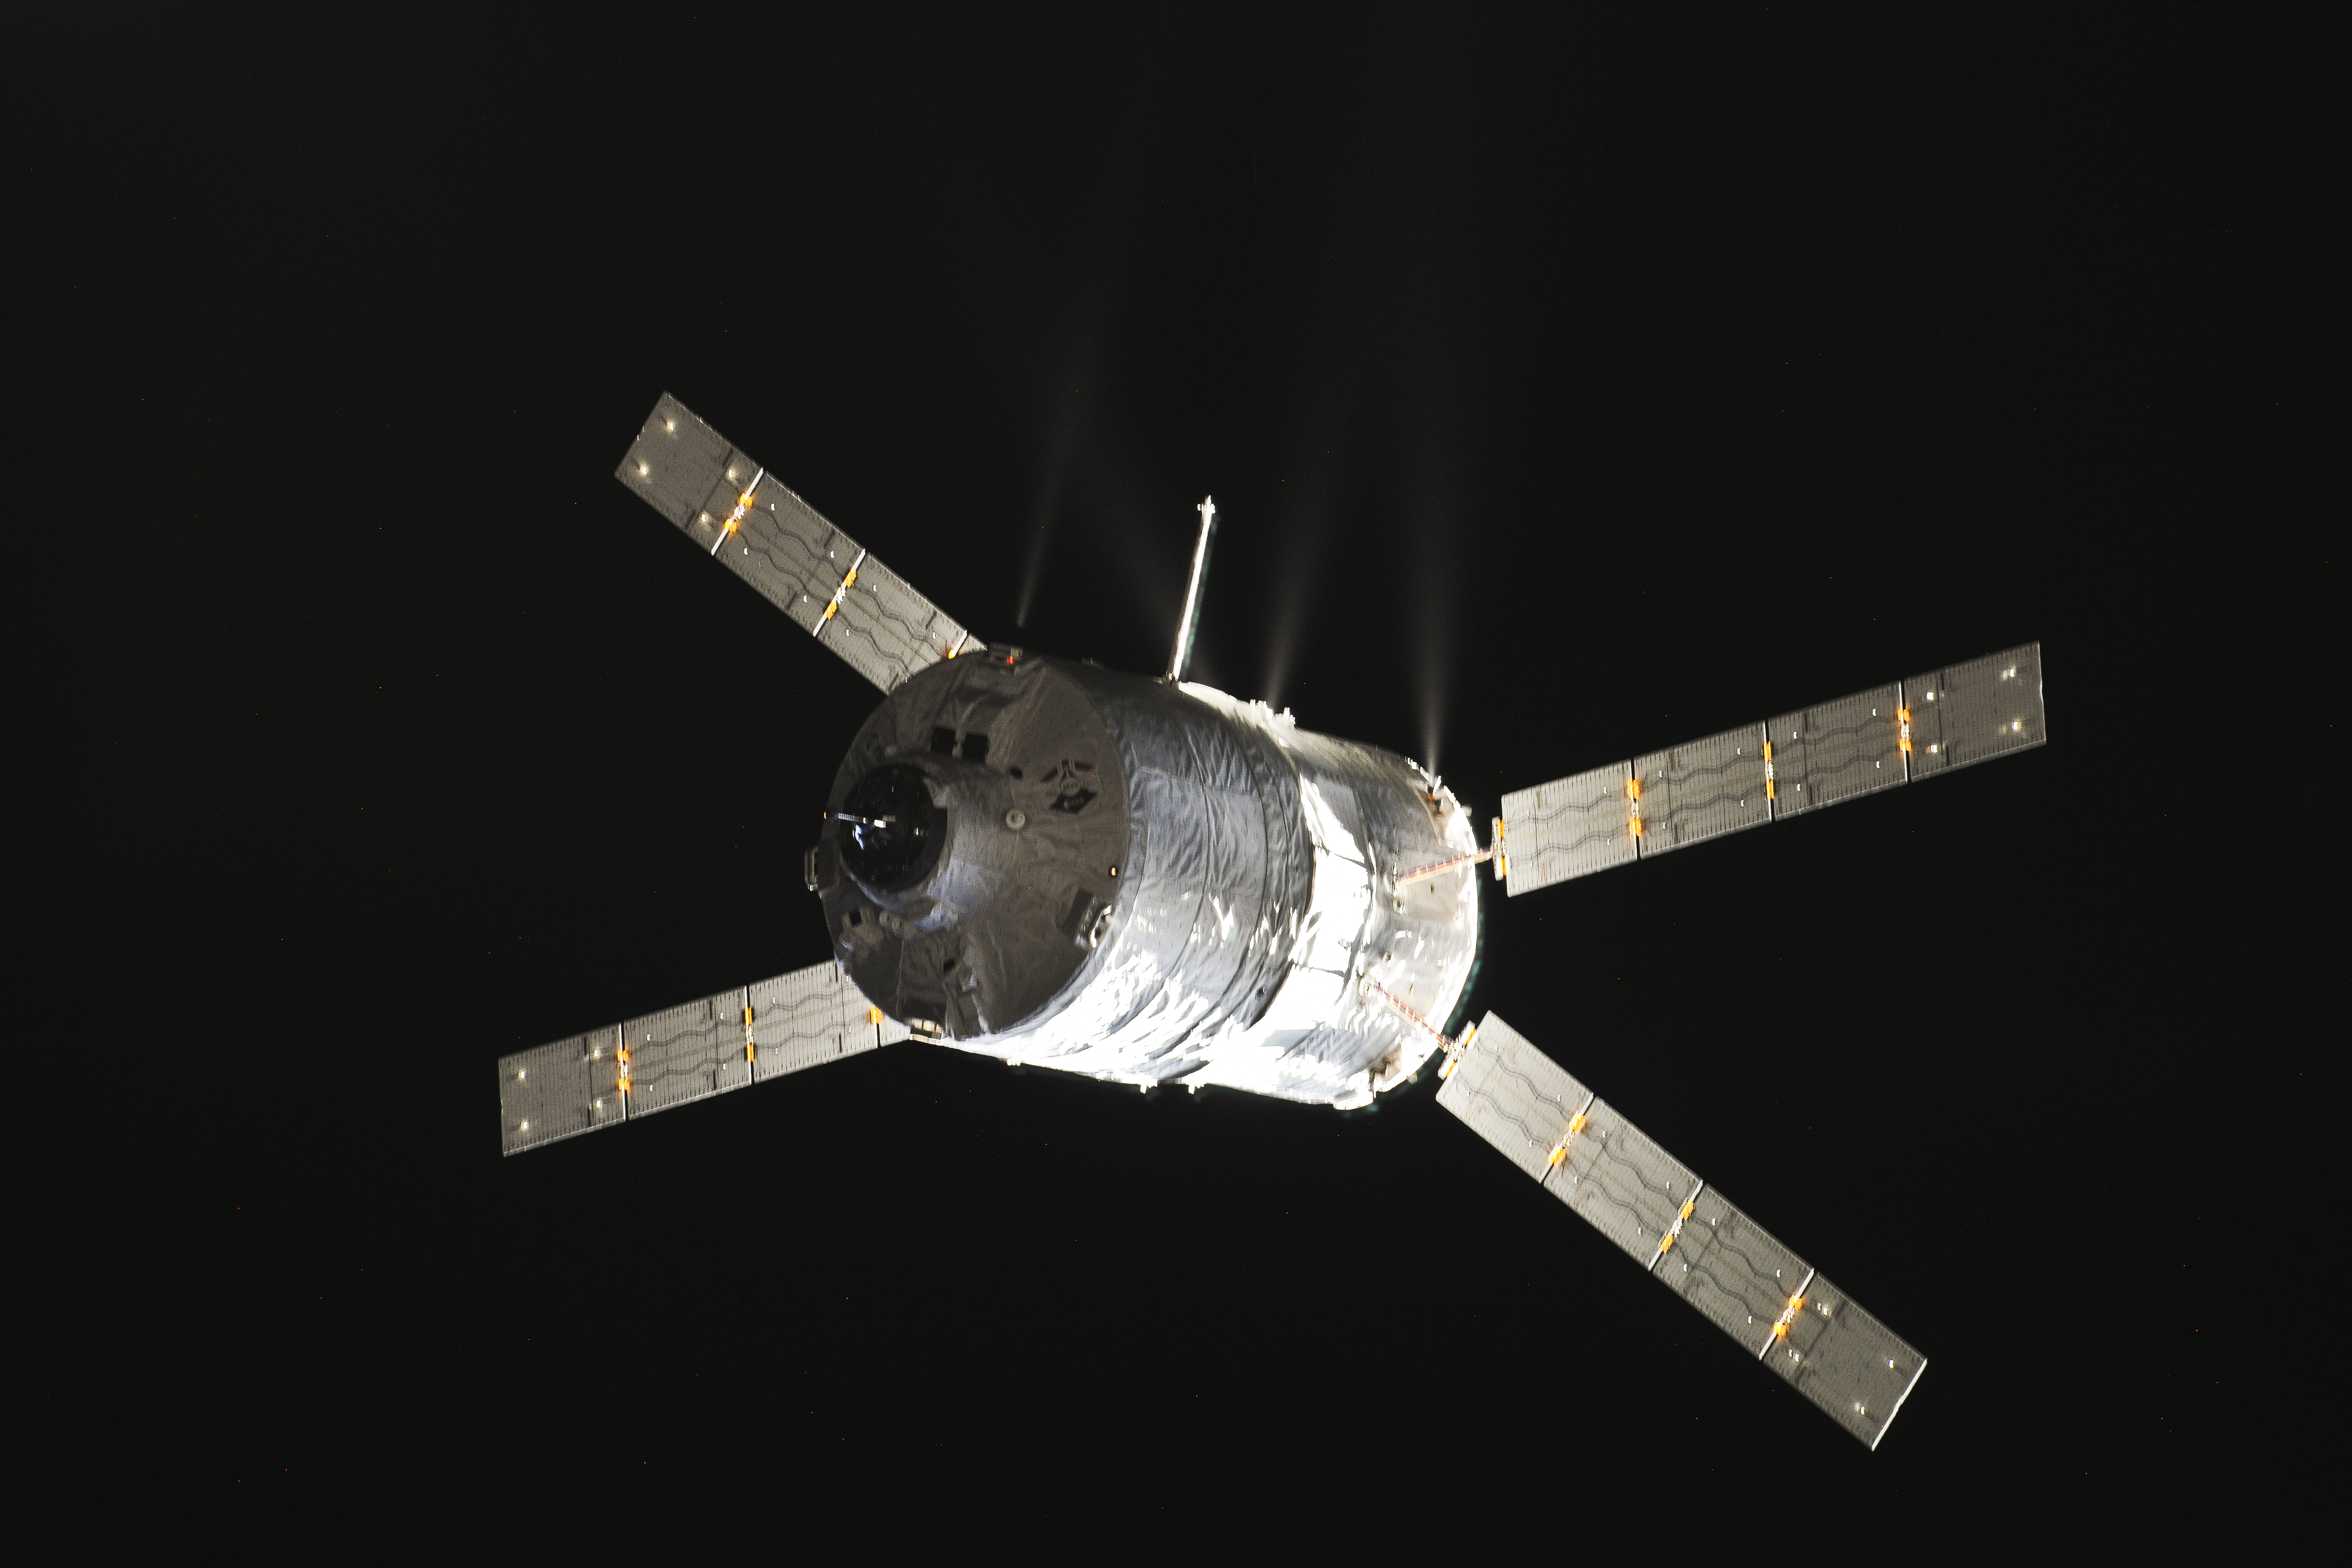 ATV-4 Rendezvous with ISS